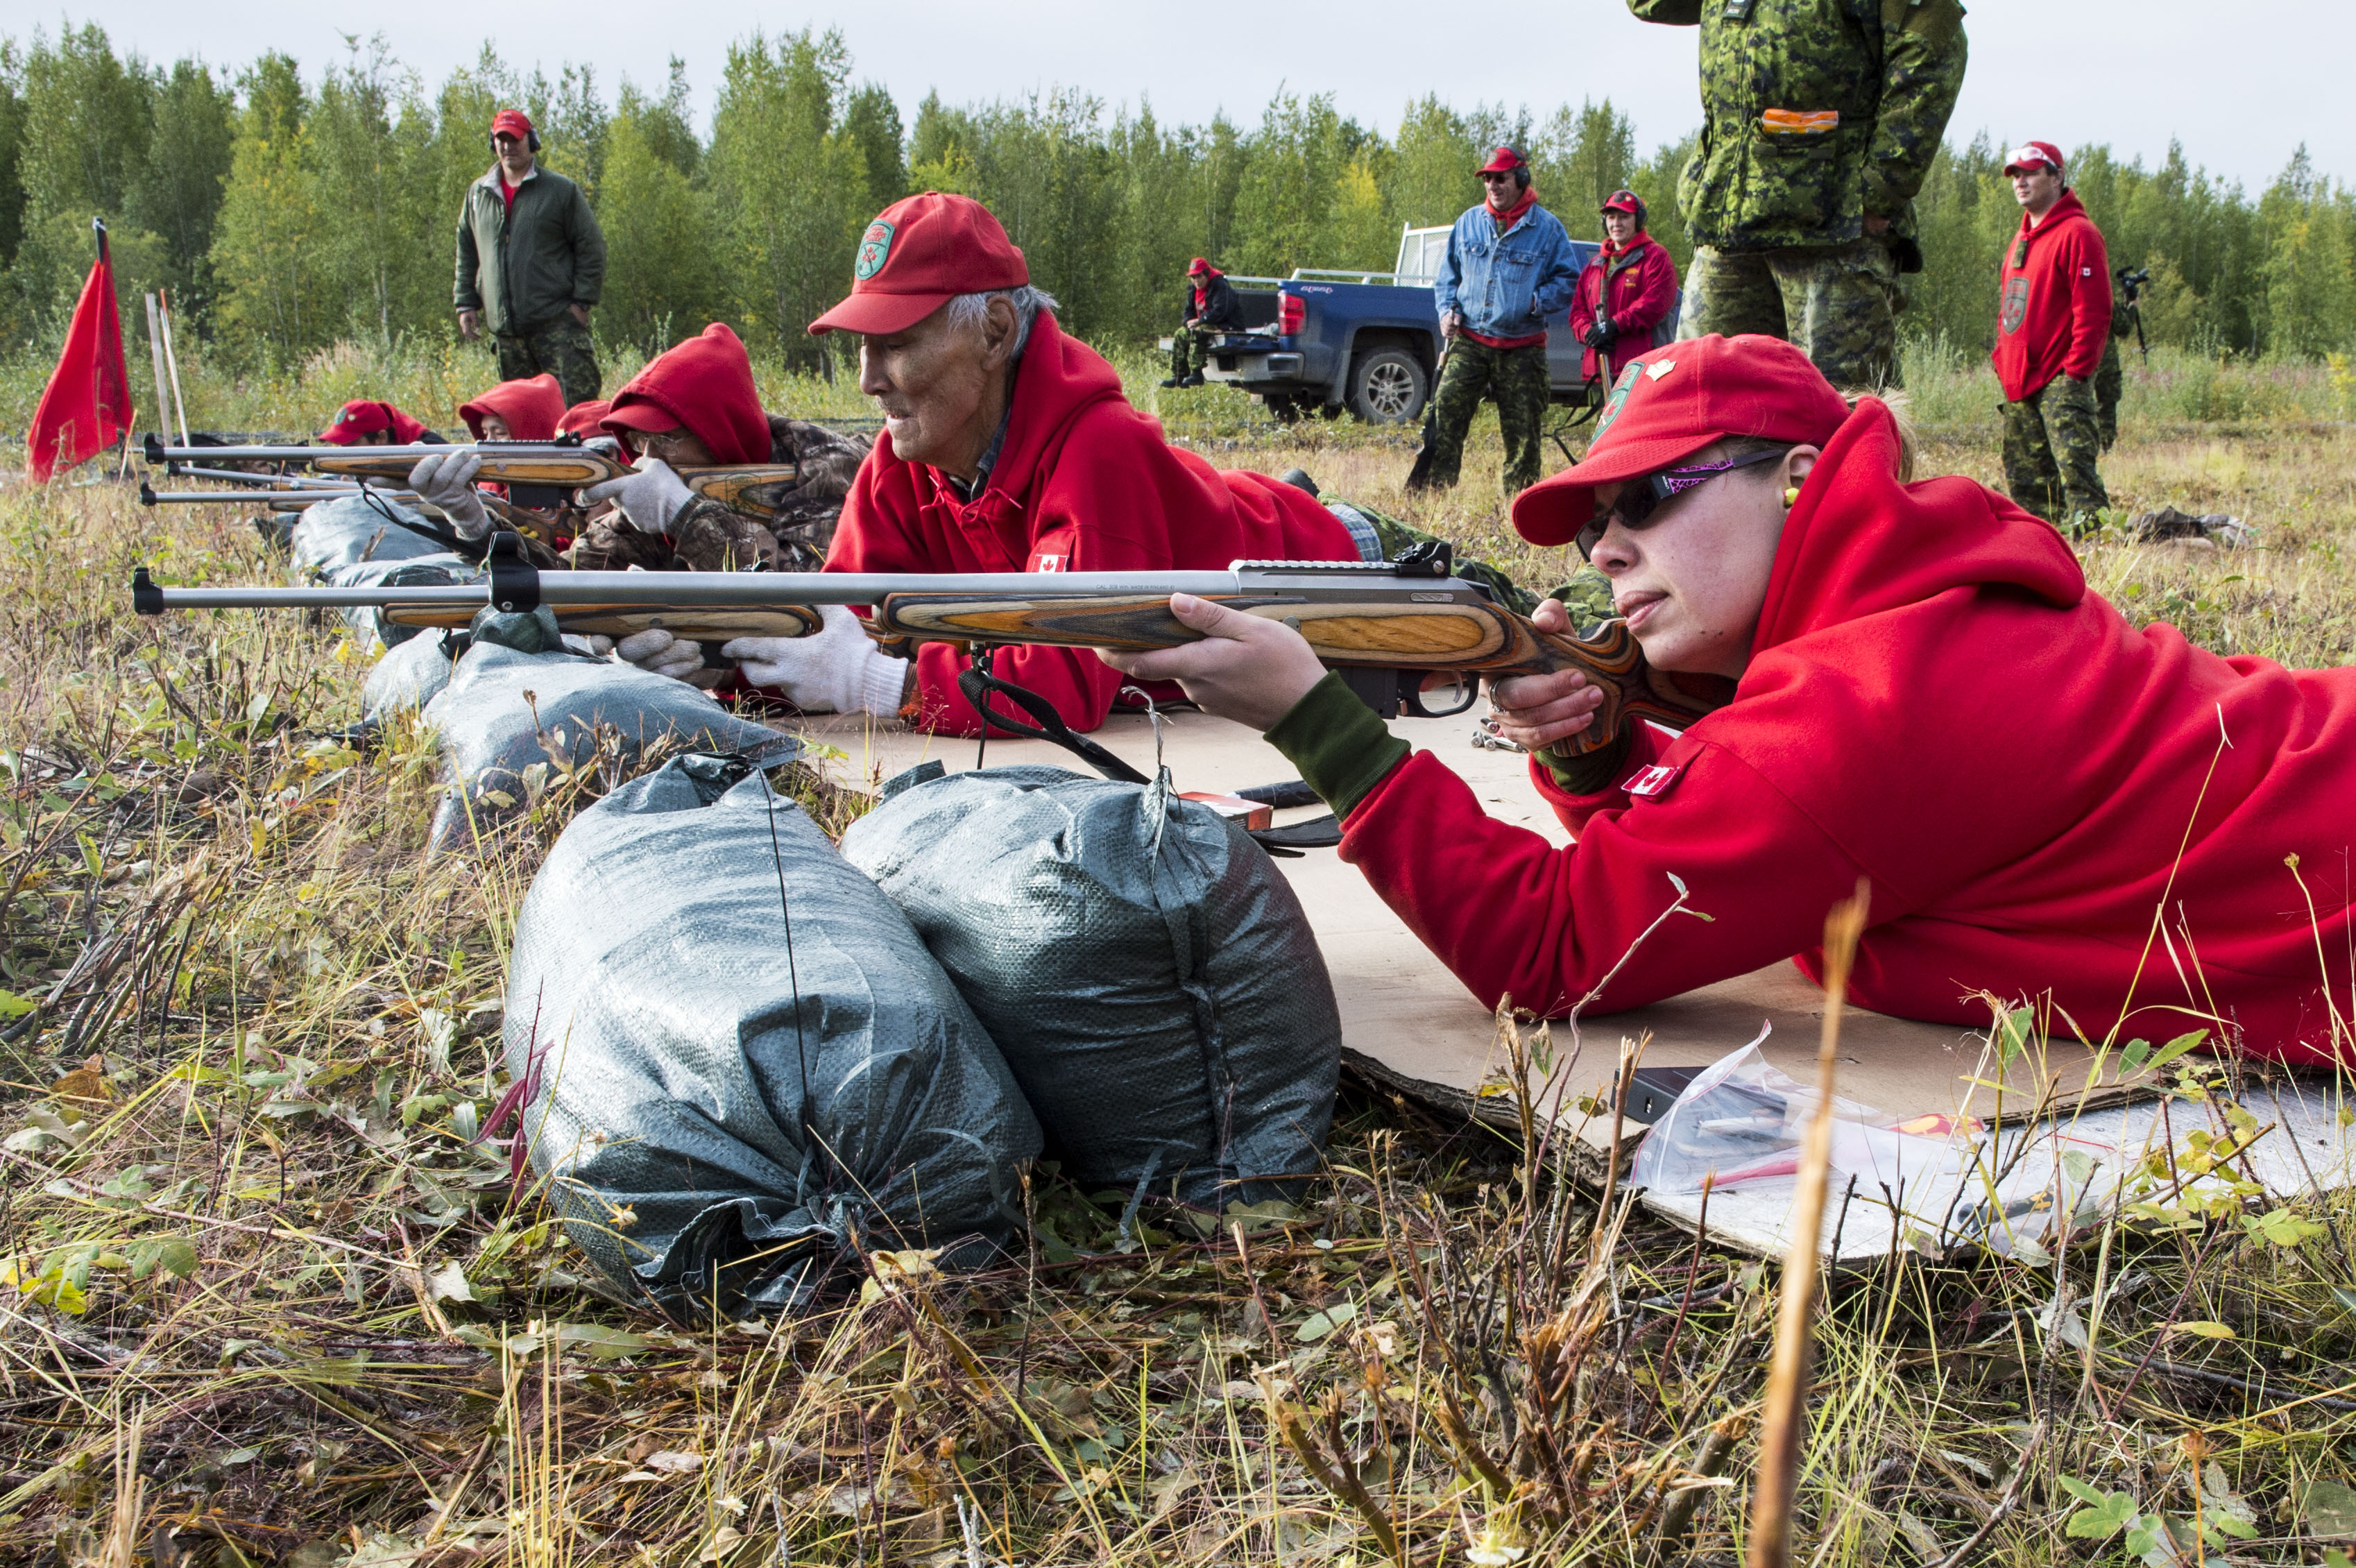 A group of six members of the Canadian Rangers dressed in red baseball caps and red hooded sweatshirts lay on the ground and aim long, wood-stocked rifles down a firing range.